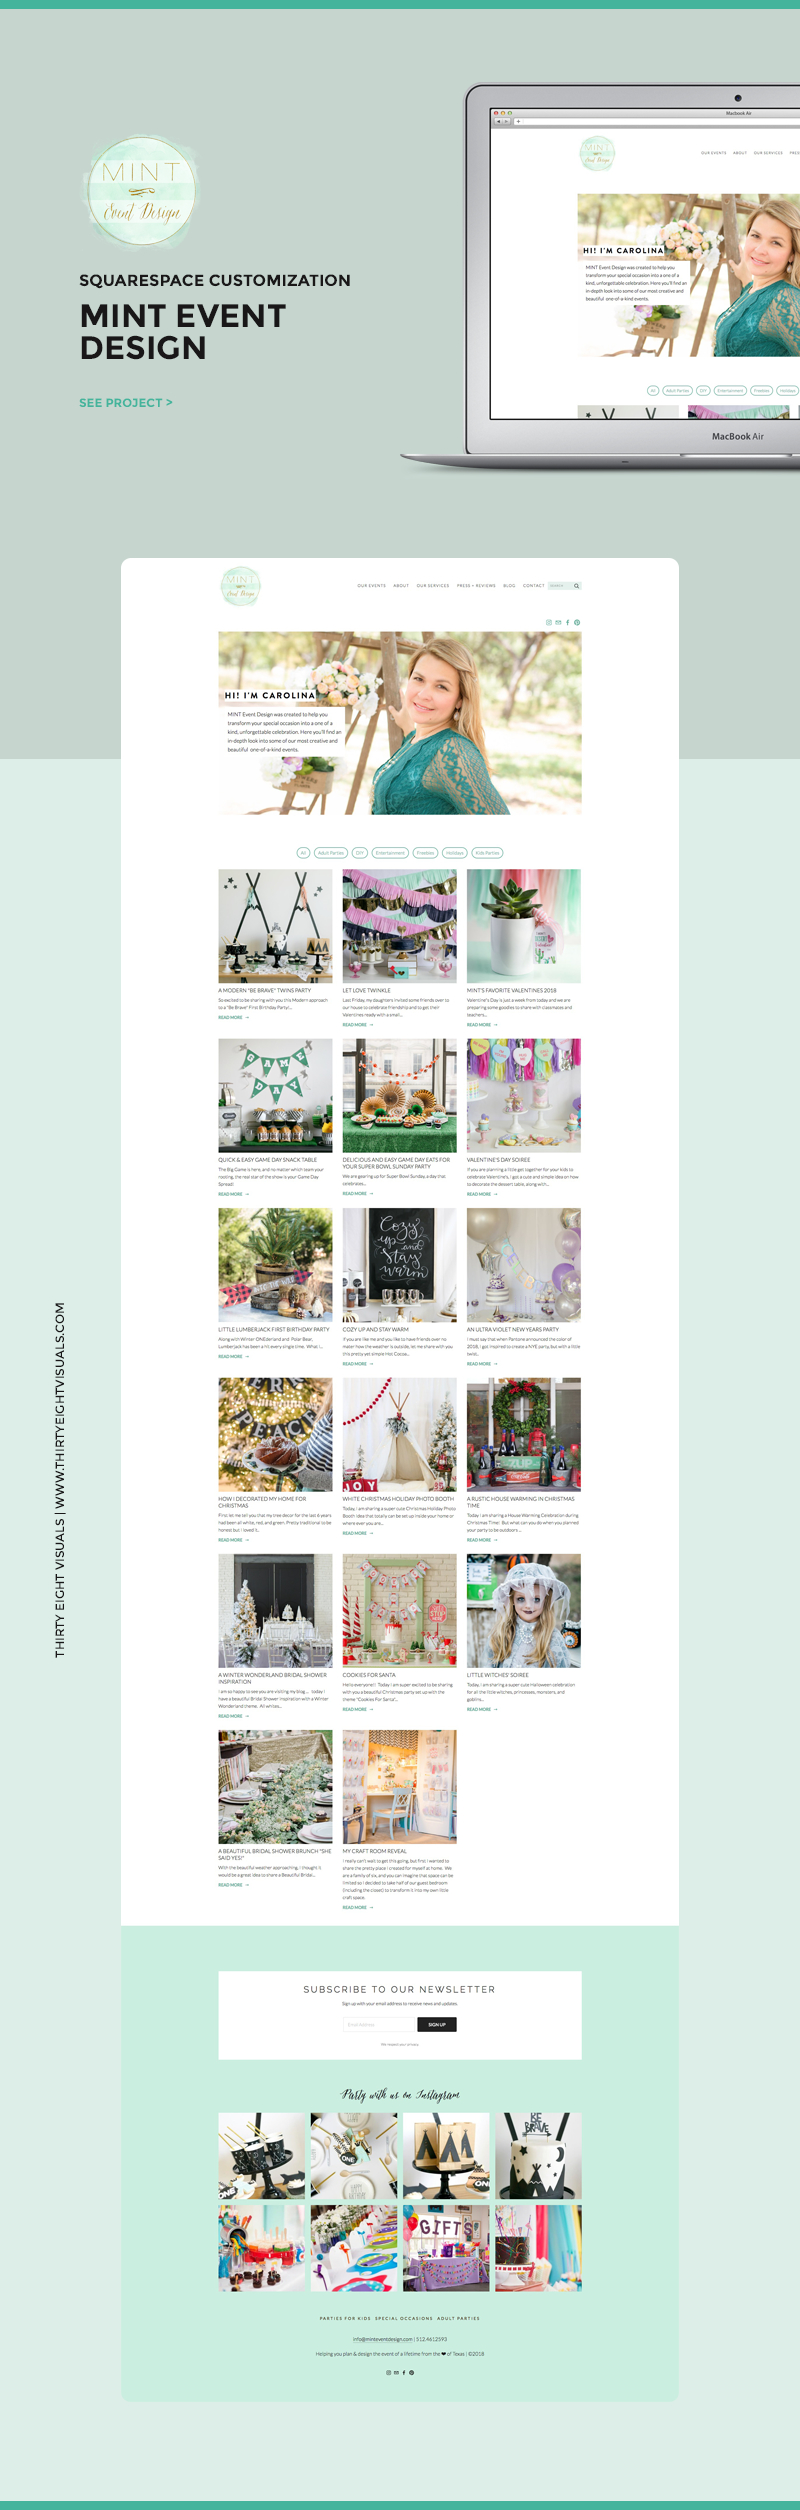 Mint Event Design Squarespace customization.jpg